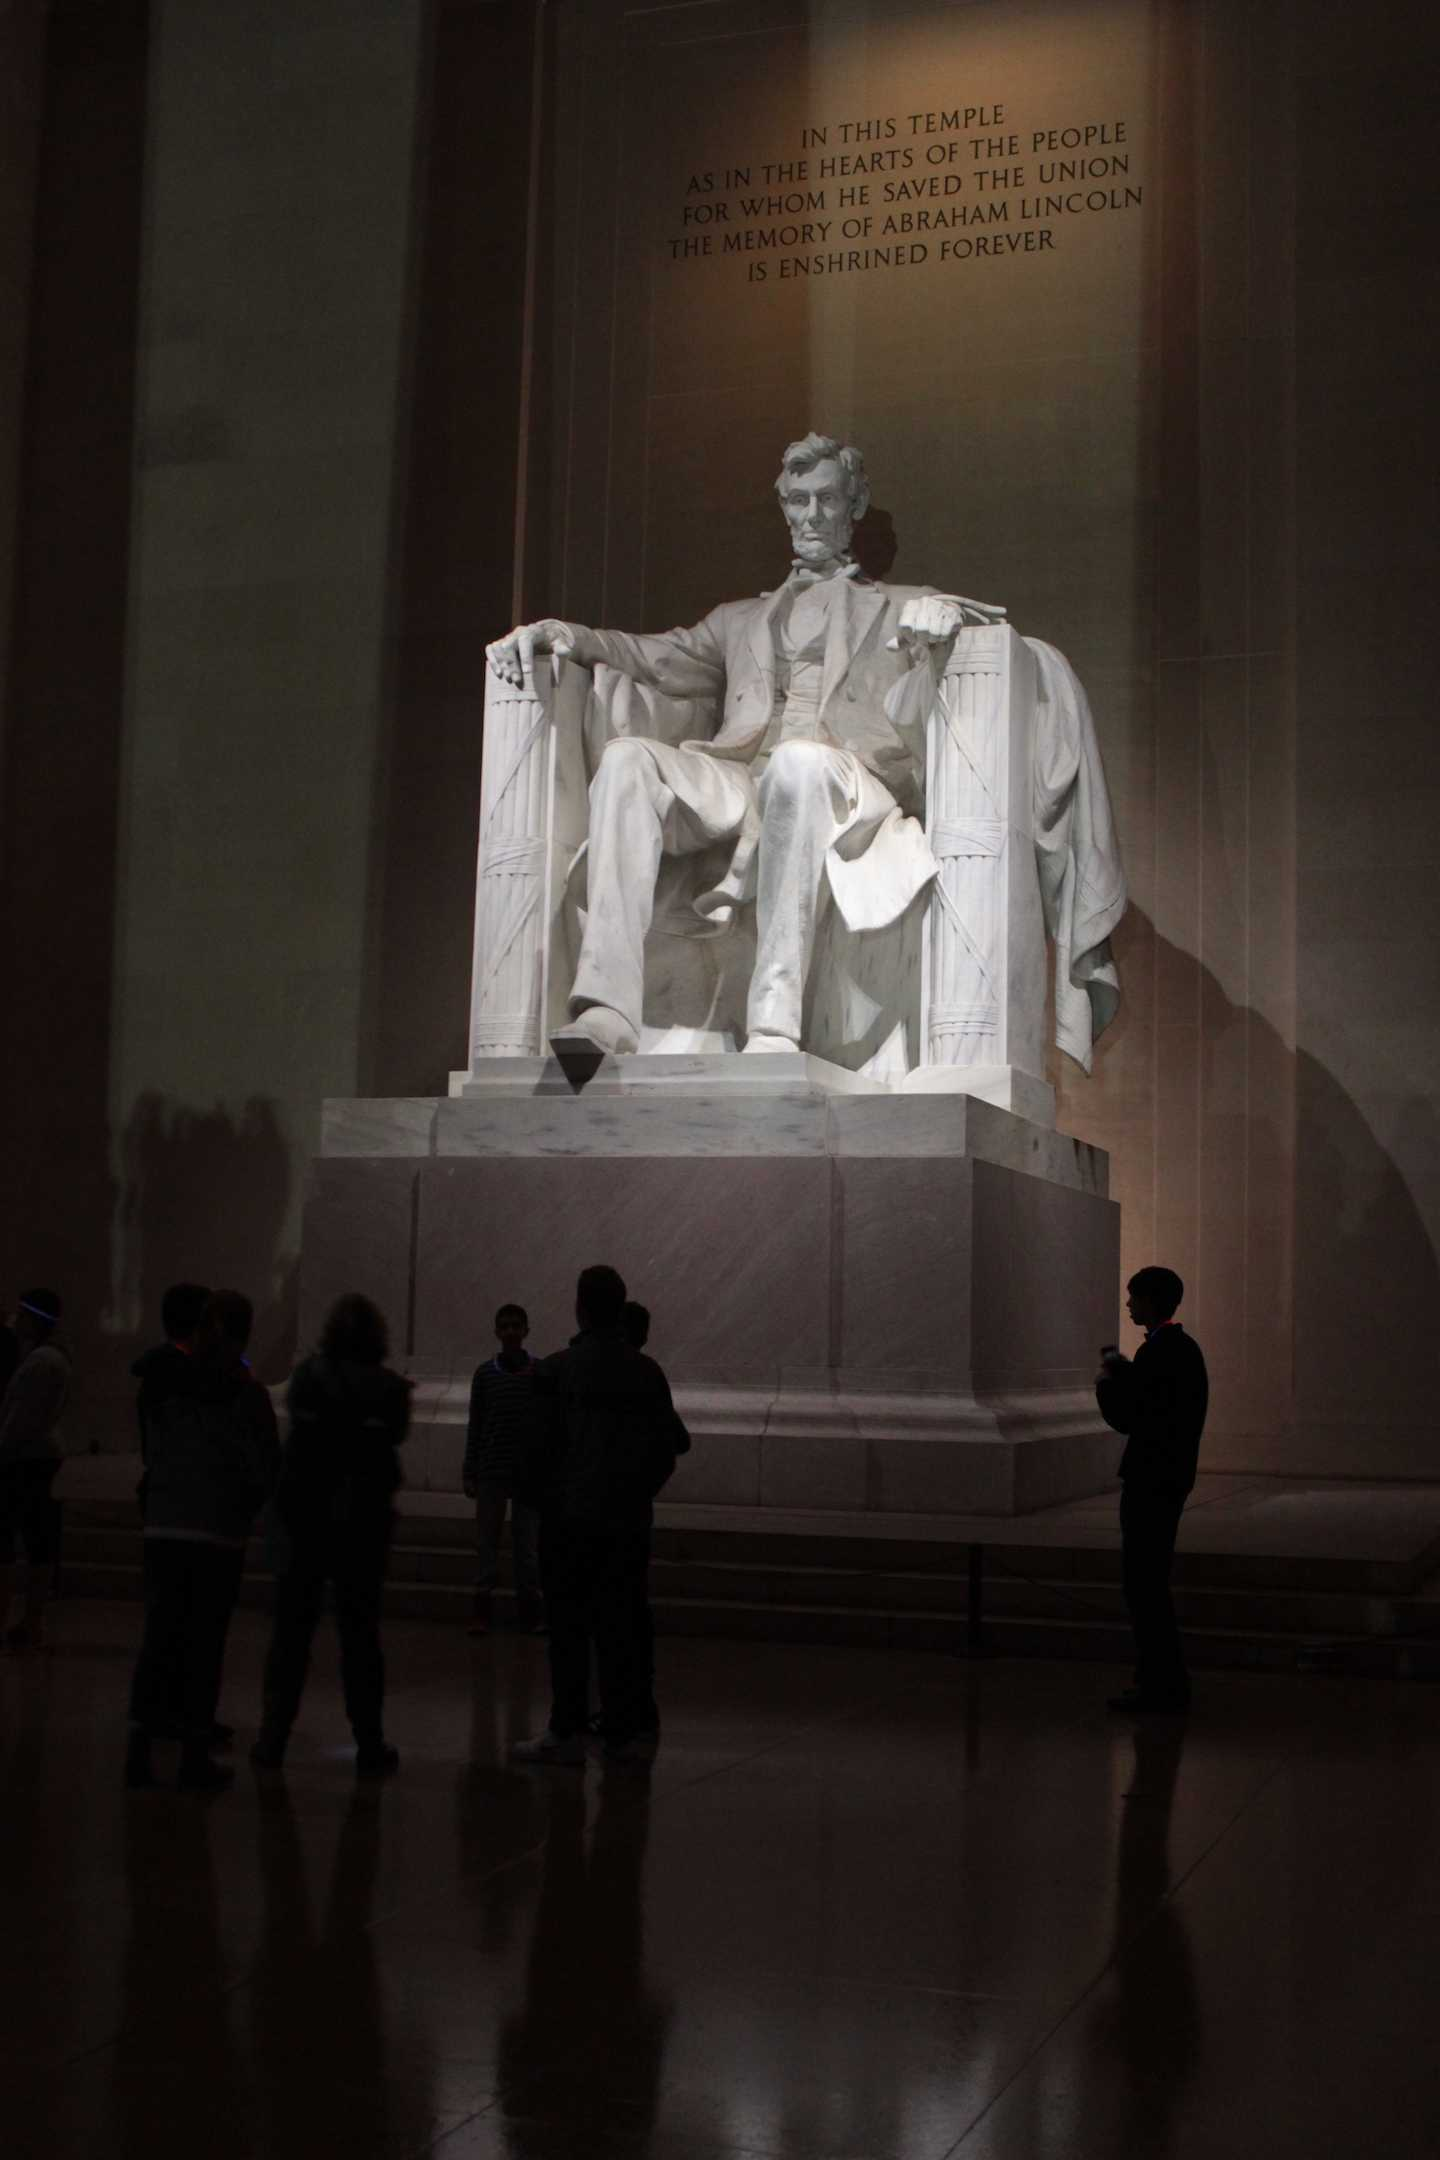 IN+THIS+TEMPLE%0AAS+IN+THE+HEARTS+OF+THE+PEOPLE%0AFOR+WHOM+HE+SAVED+THE+UNION%0ATHE+MEMORY+OF+ABRAHAM+LINCOLN%0AIS+ENSHRINED+FOREVER